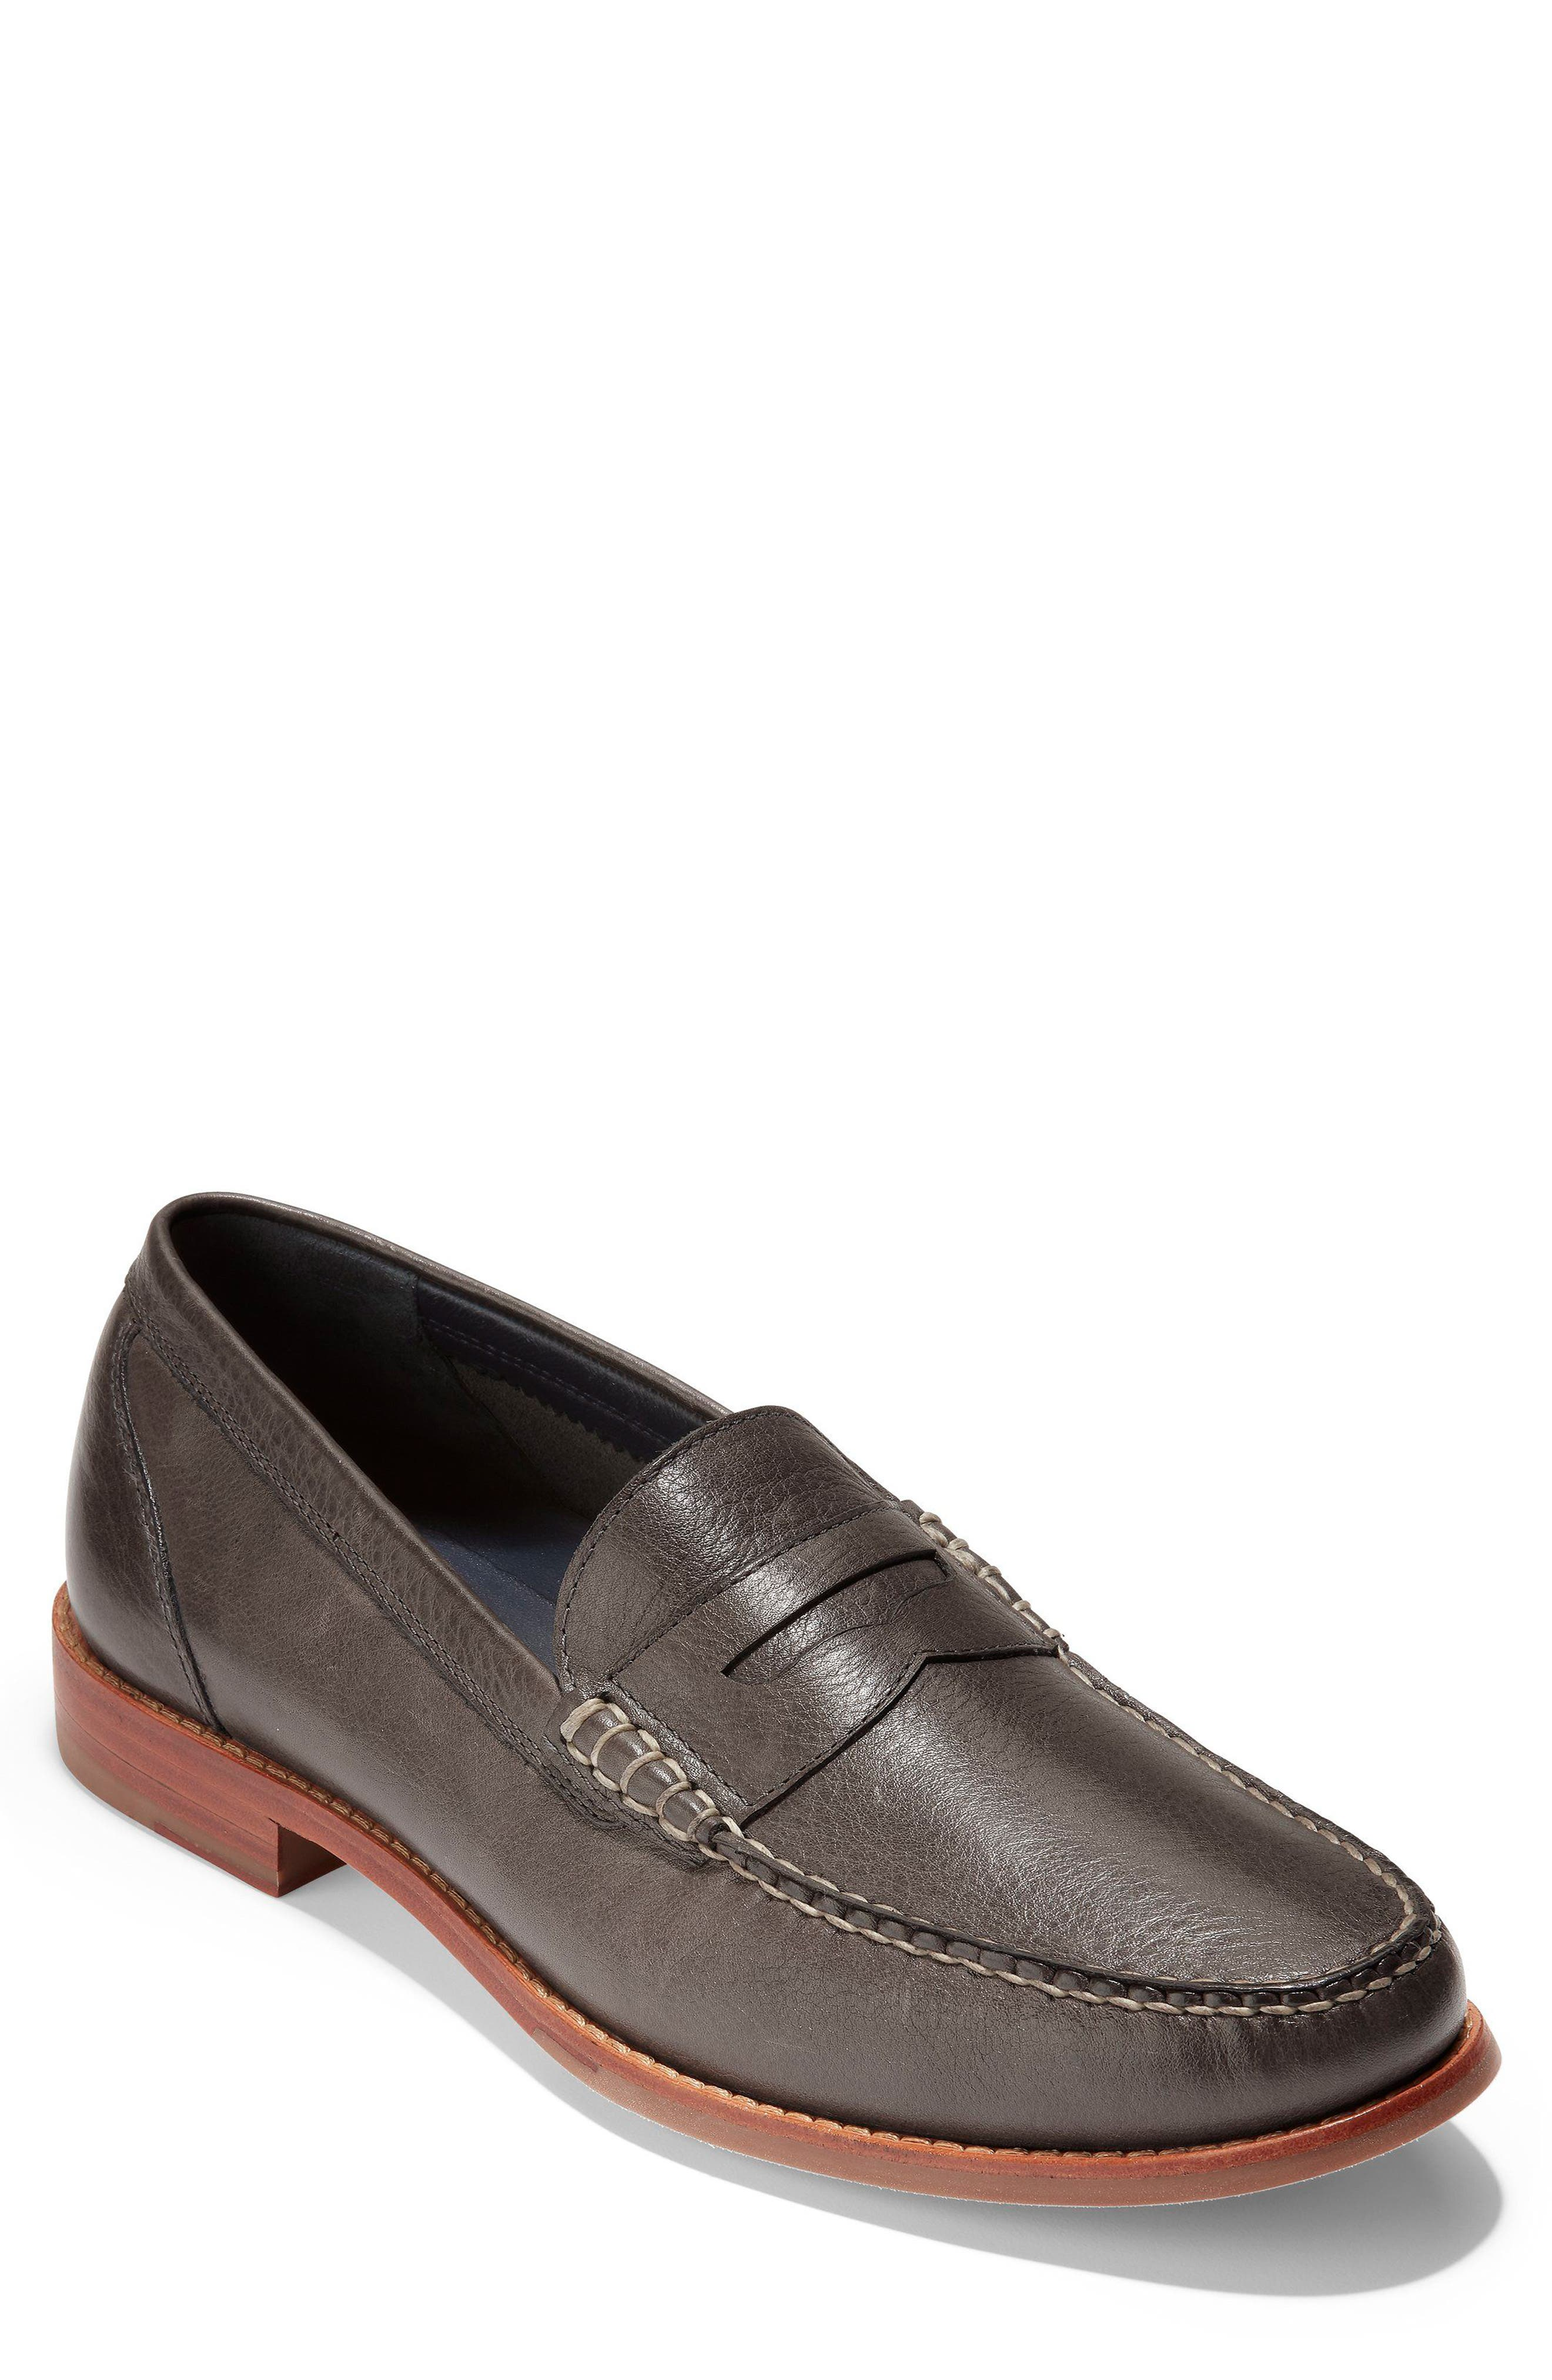 'Pinch Grand' Penny Loafer,                             Main thumbnail 1, color,                             021